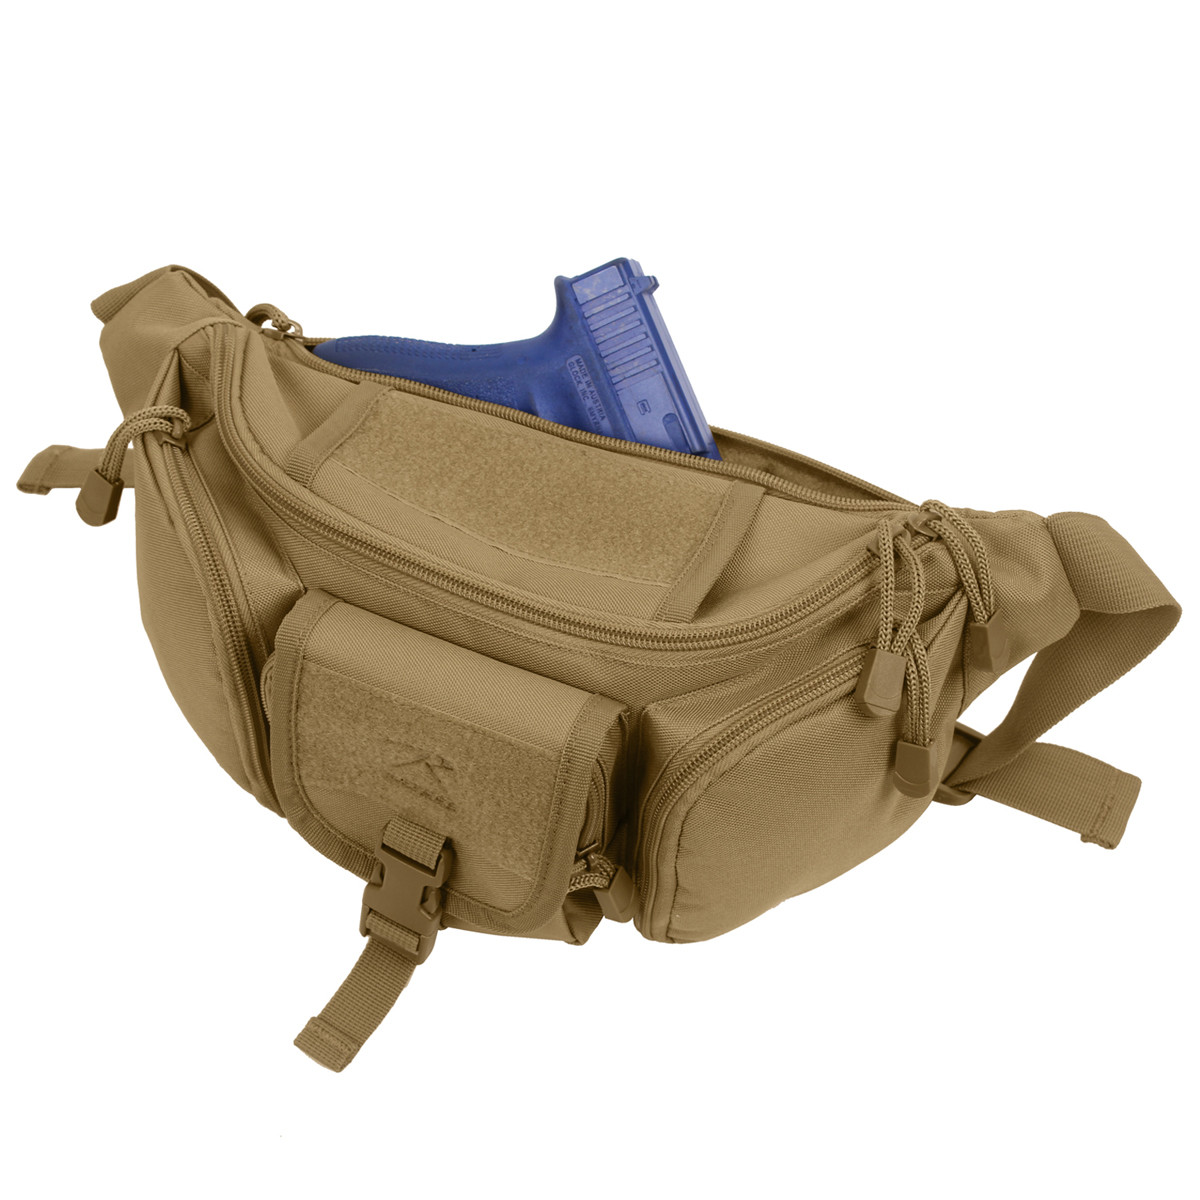 Shop Tactical Concealed Carry Waist Packs - Fatigues Army Navy 693d44d80